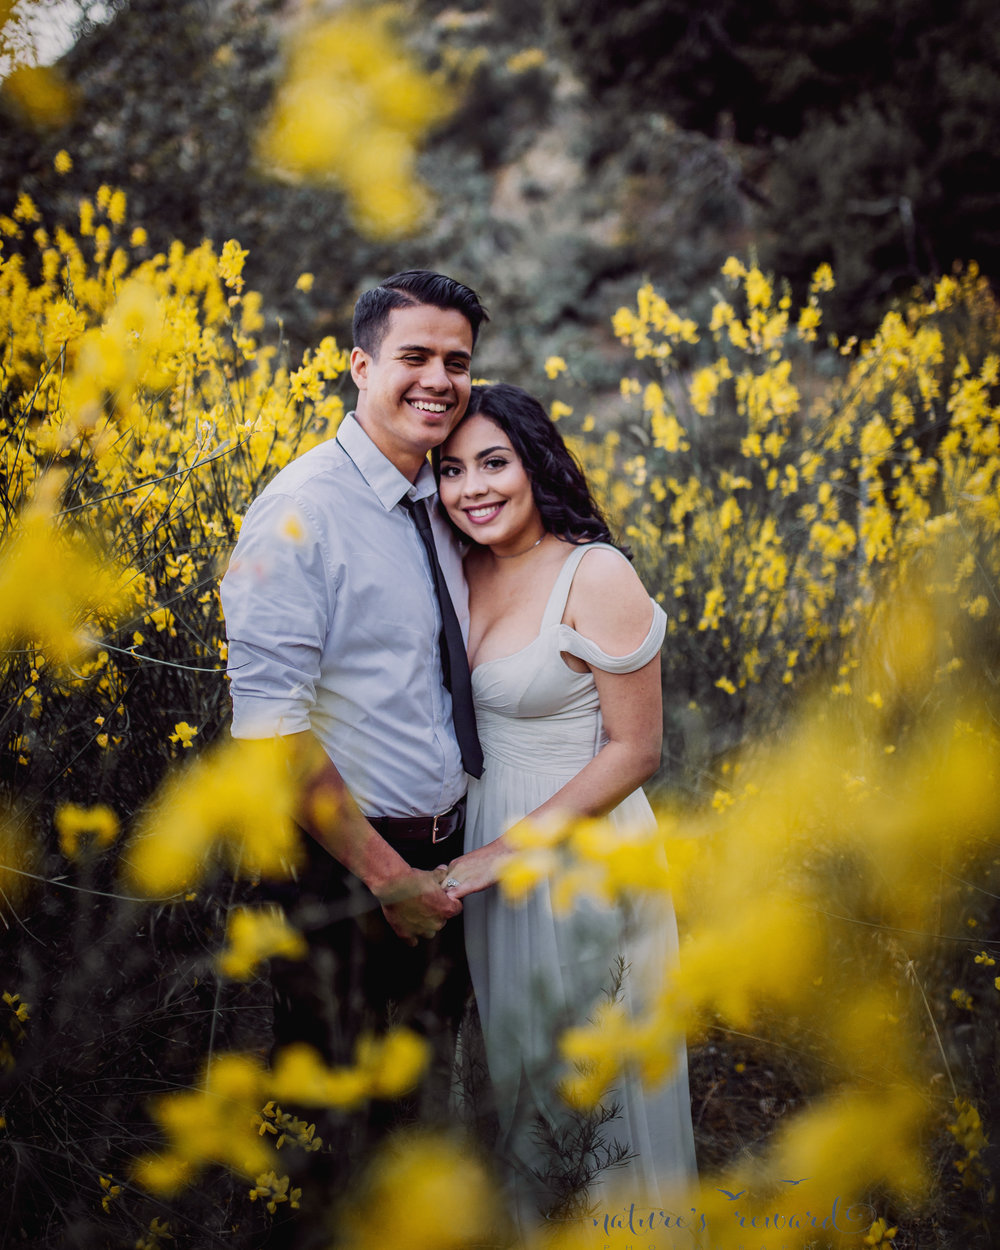 The couple surrounded by wild yellow flowers in this portrait by Nature's Reward Photography